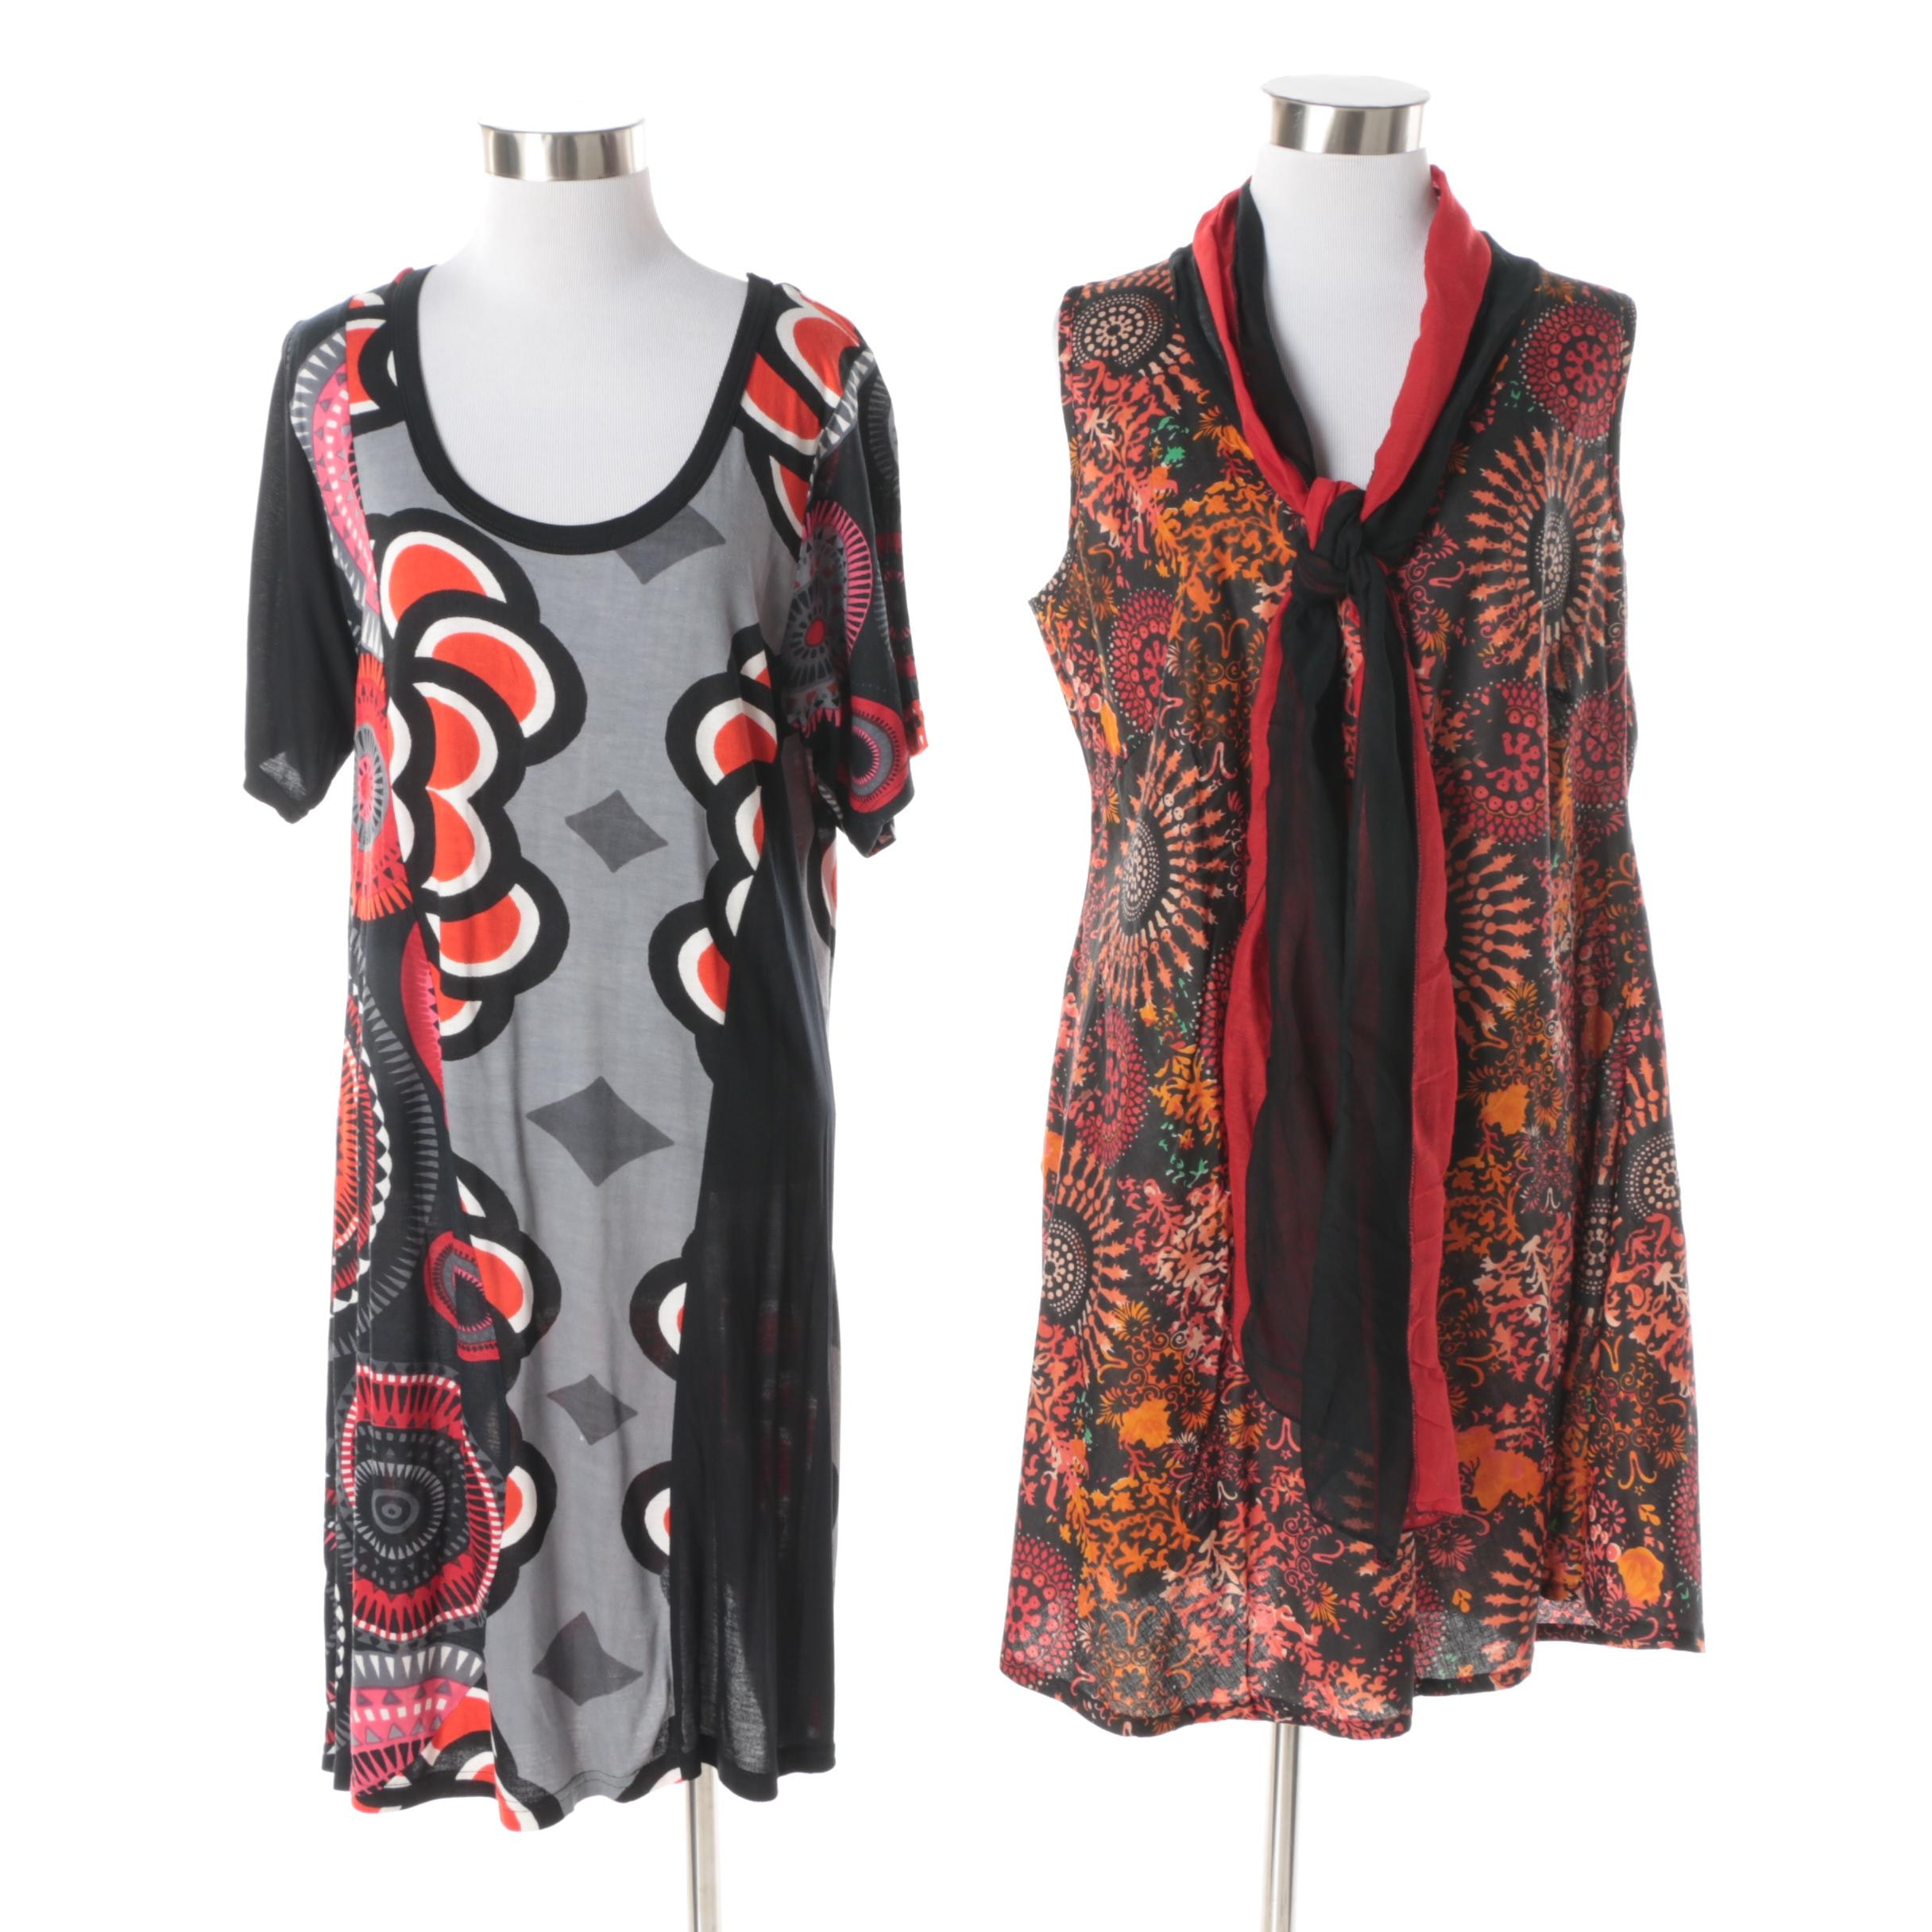 Aller Simplement Mandala Patterned Dresses